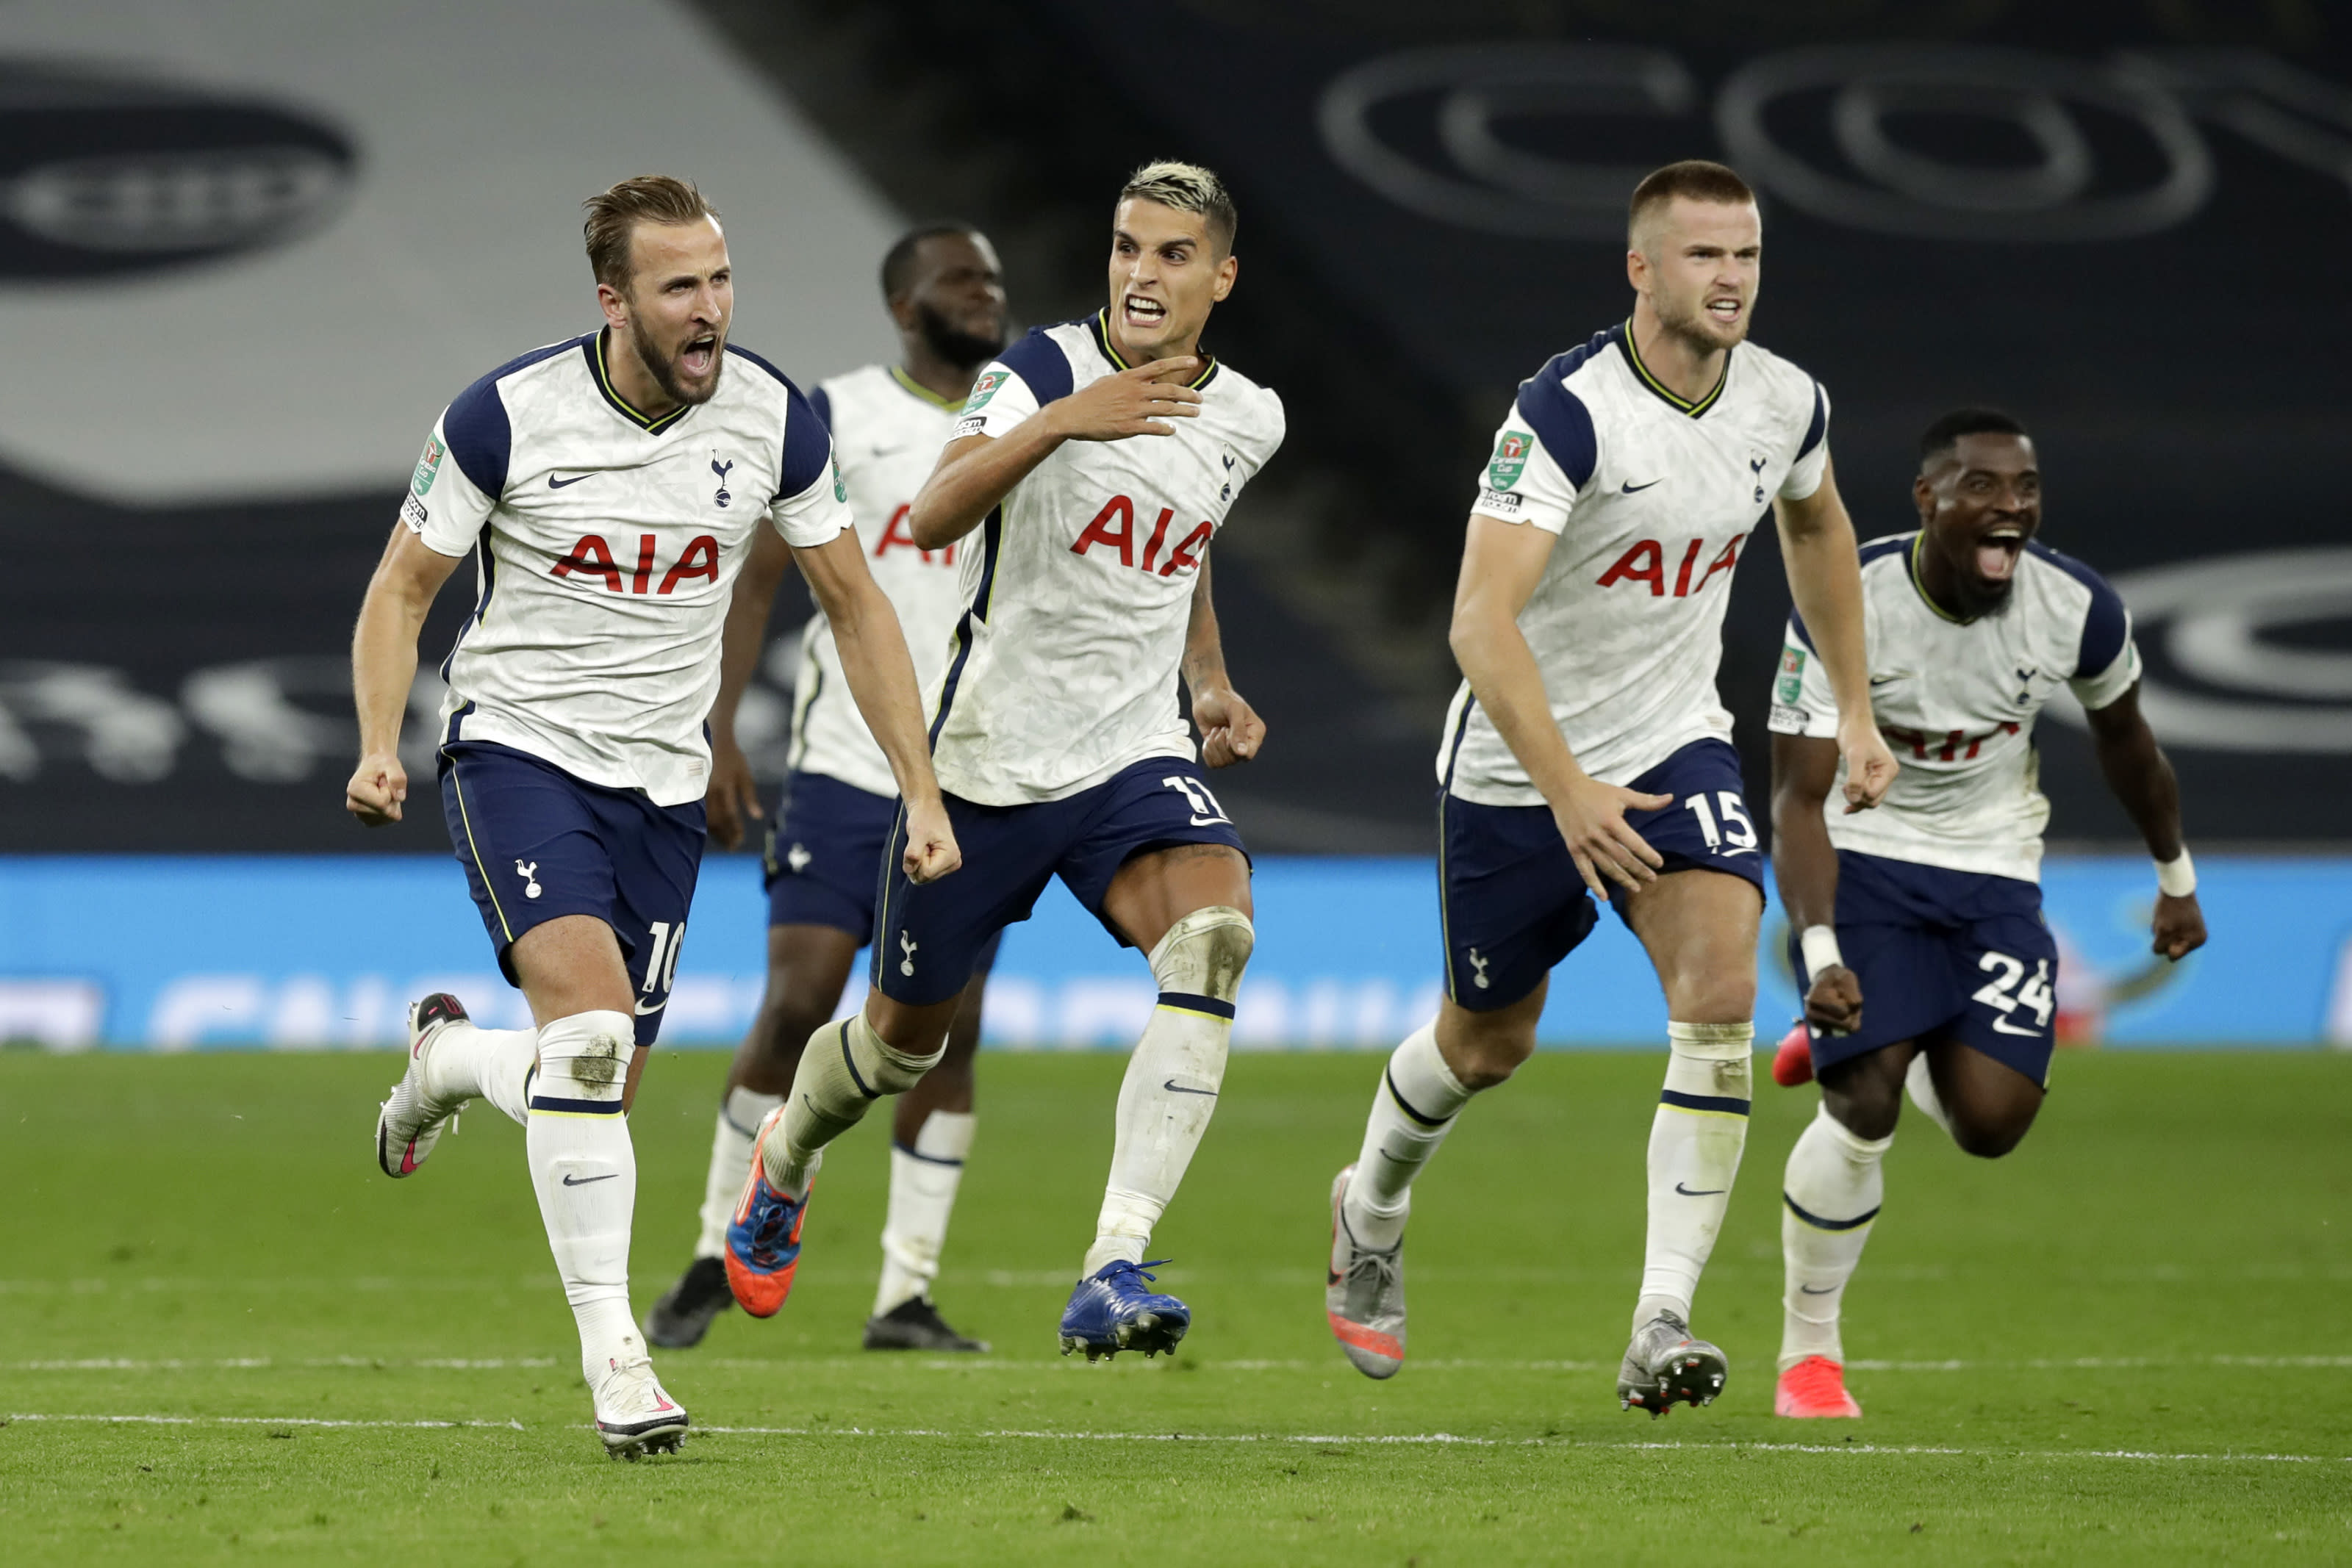 Tottenham Hotspur and Cups, Where Spurs Stand this Season